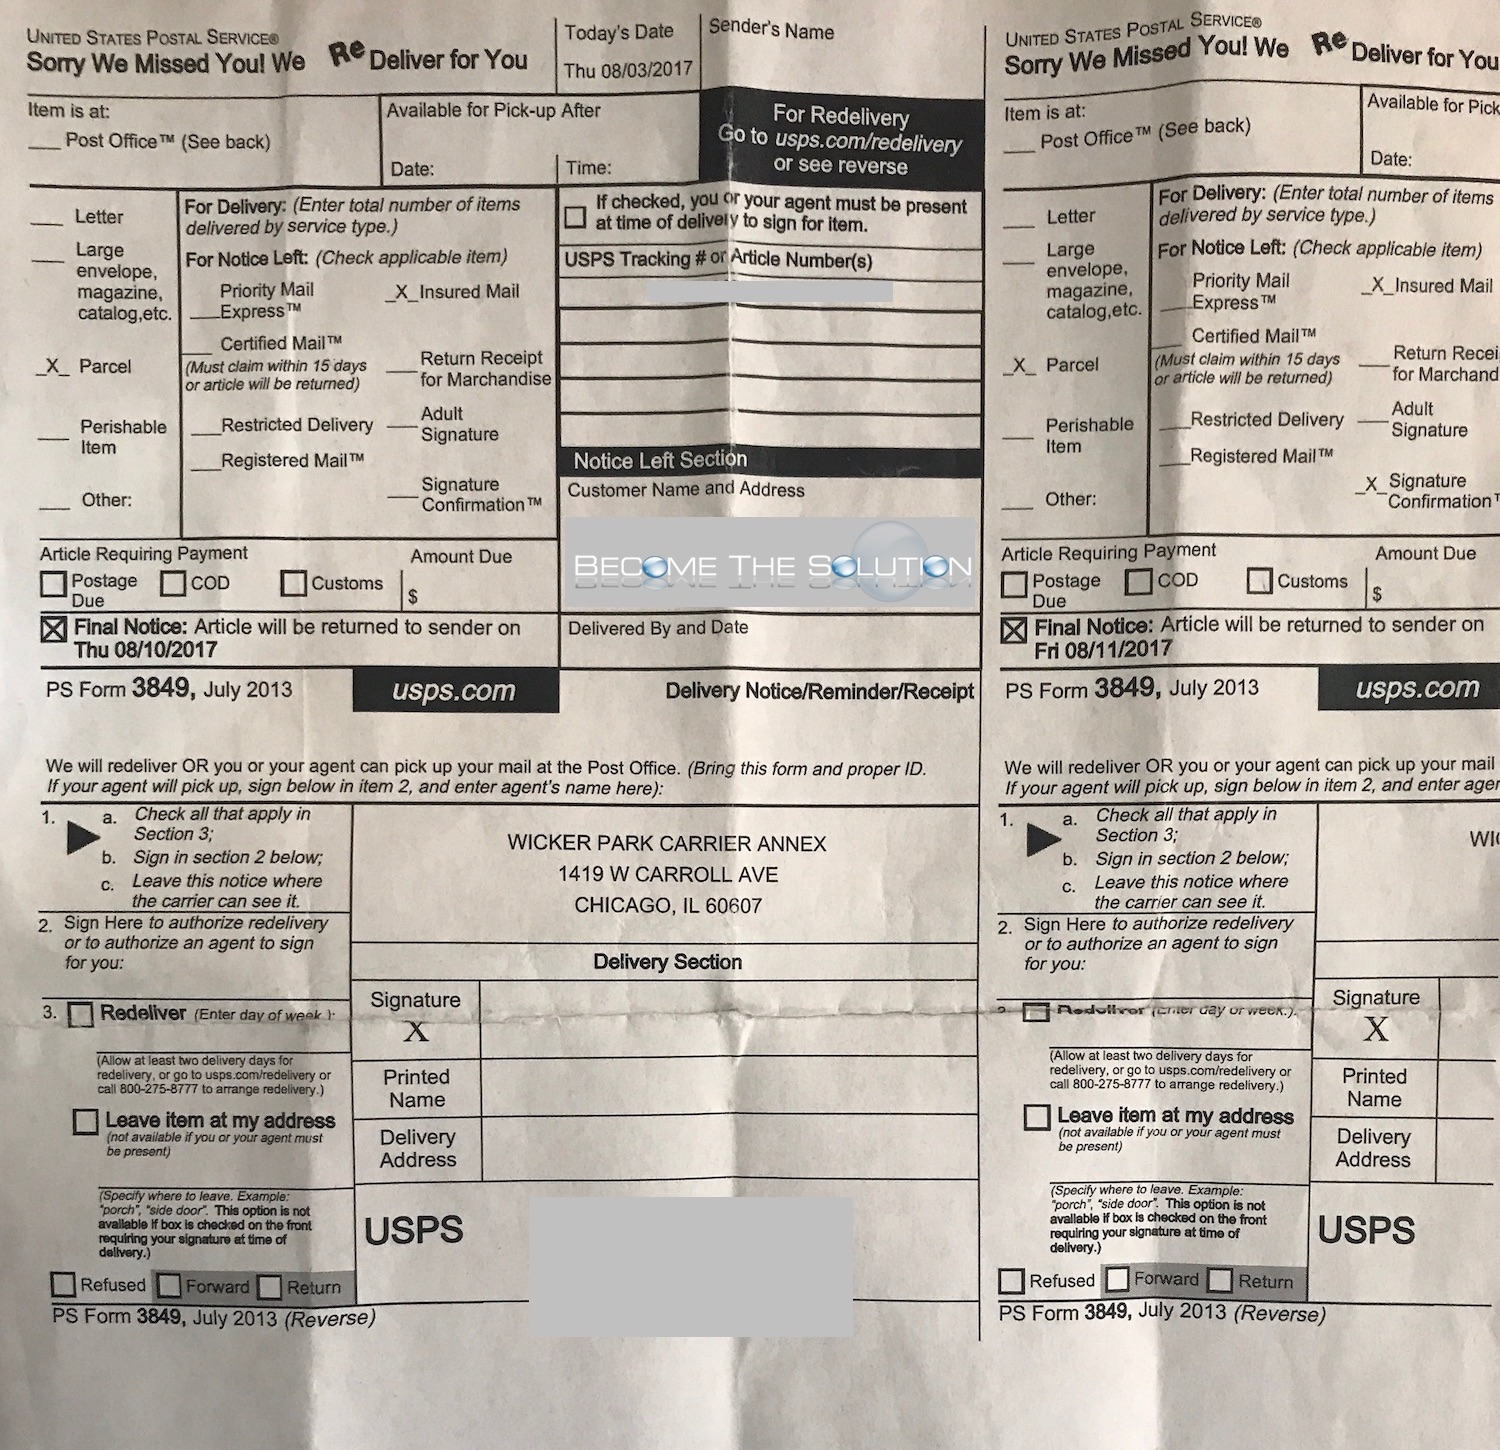 USPS Form 3849 Notice Left Section in Mailbox – But Package Not at